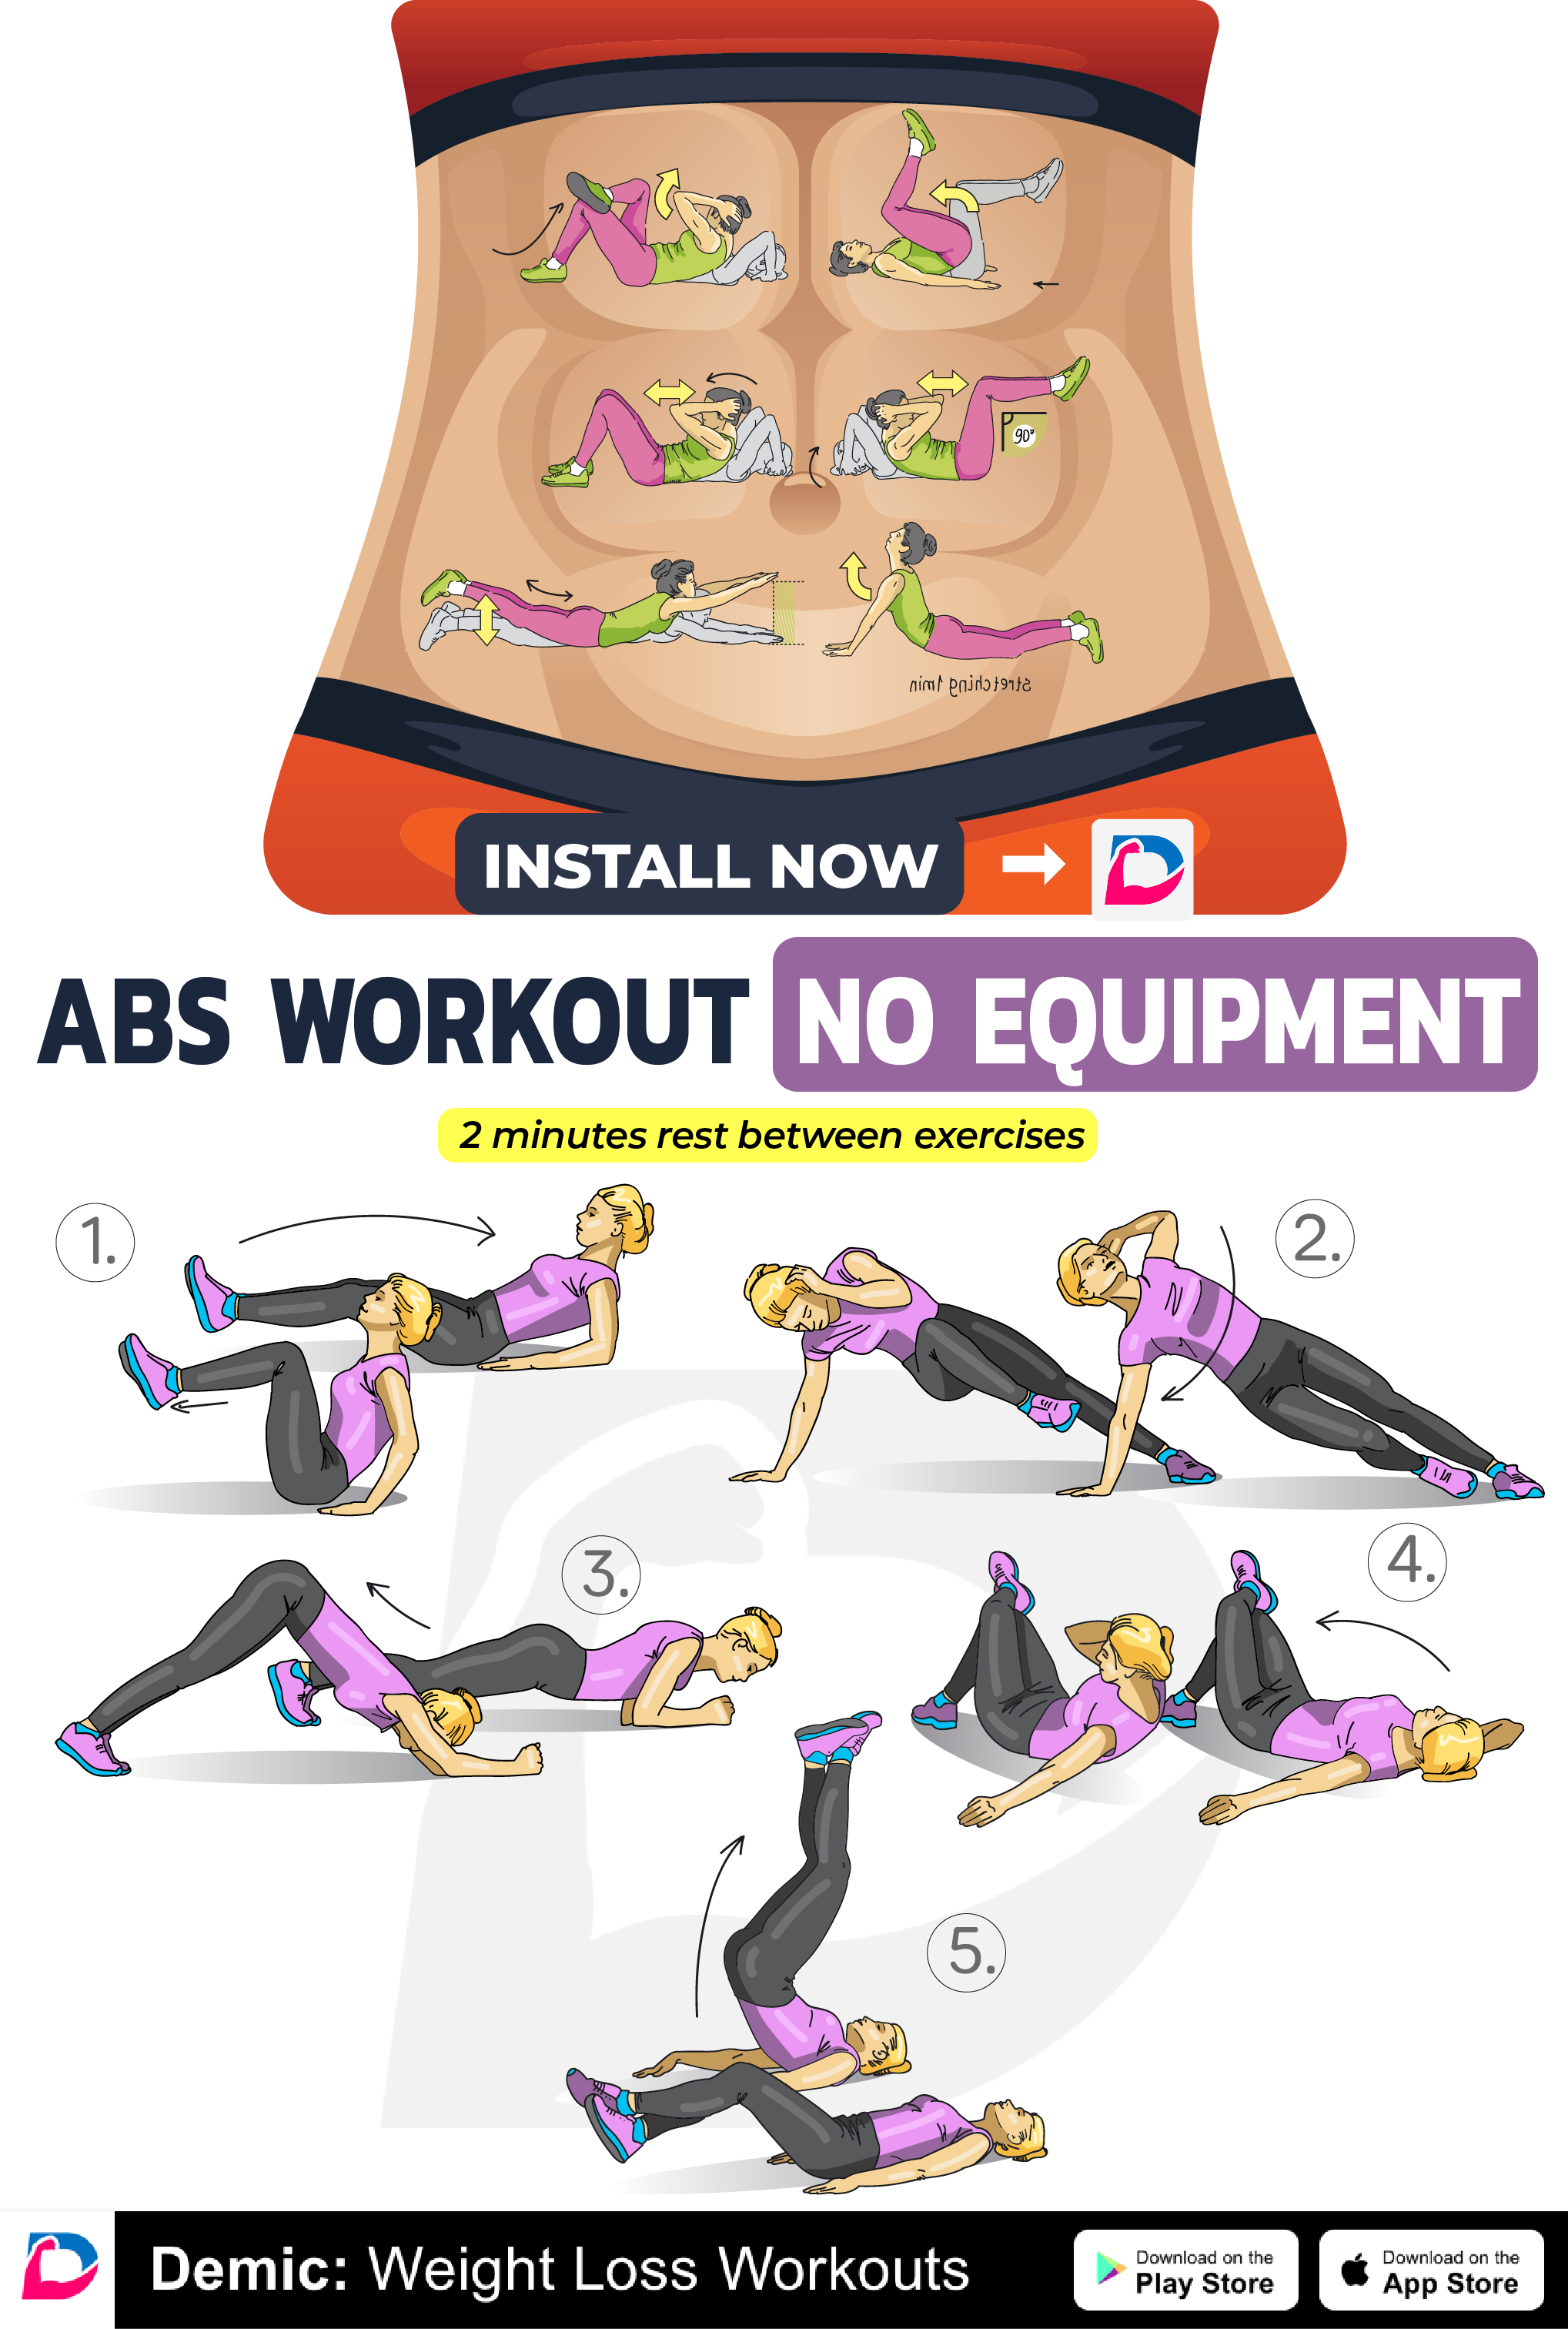 ABS Workout No Equipment! | Demic: Fitness | Workout, Fitness, Exercise